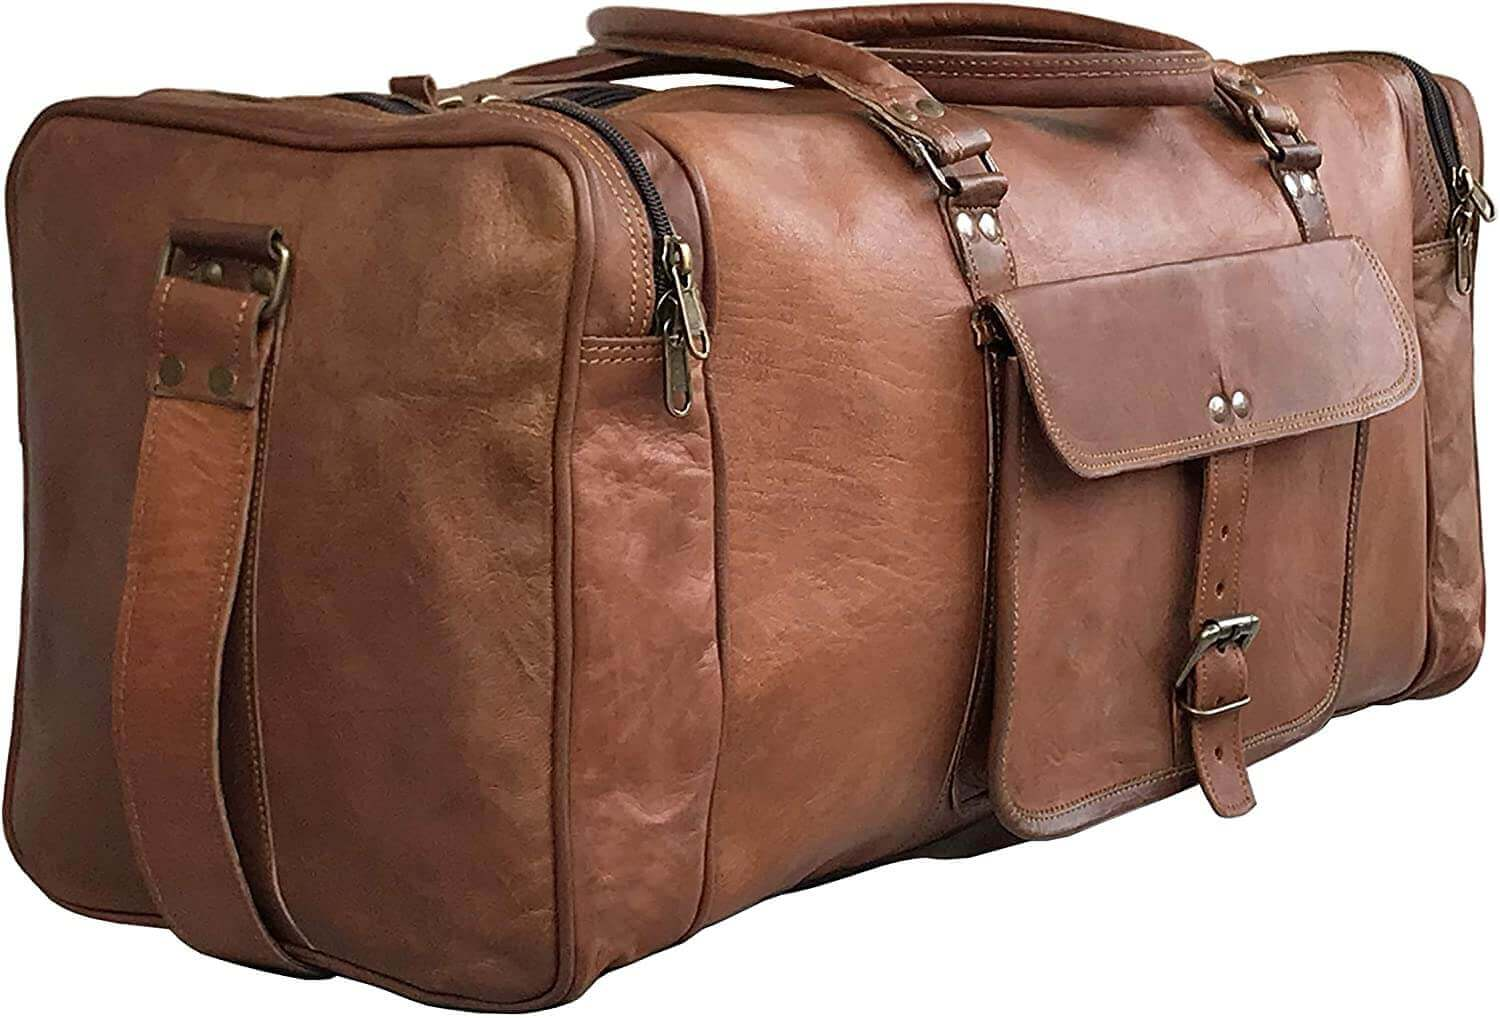 24 Inch Genuine Leather Duffel